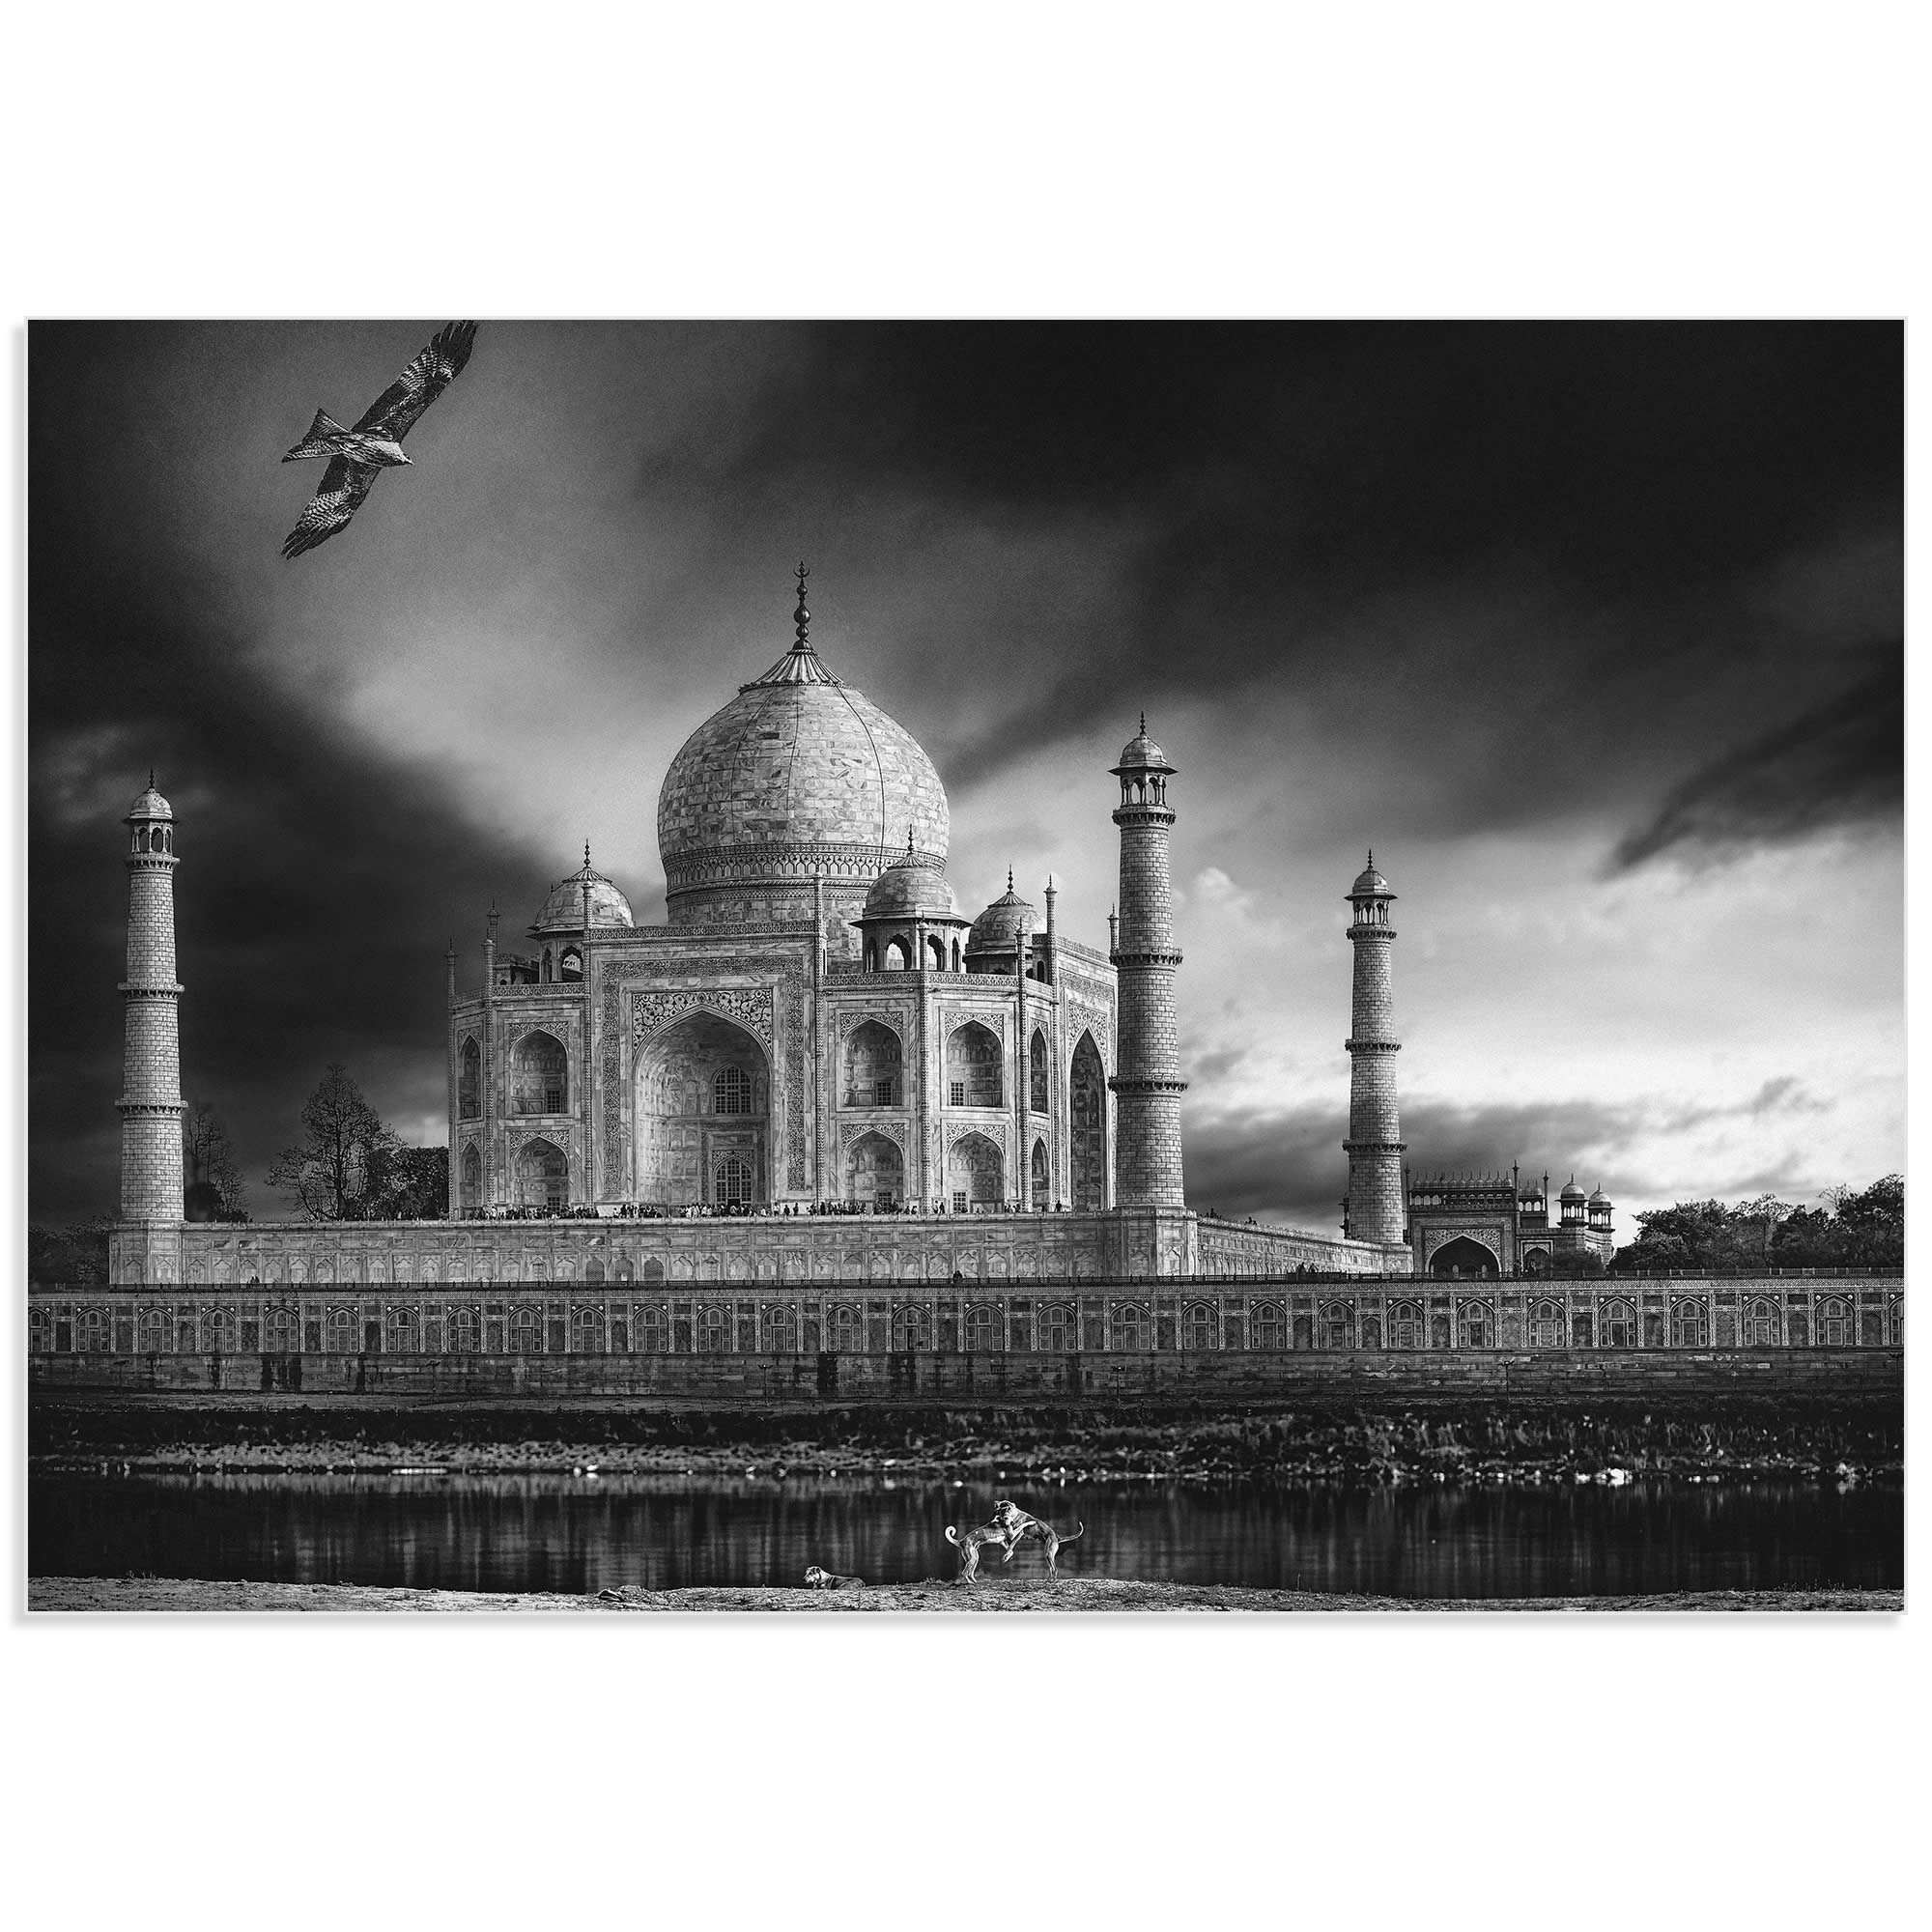 Taj Mahal in Black and White by Piet Flour - Taj Mahal Image on Metal or Acrylic - Alternate View 2